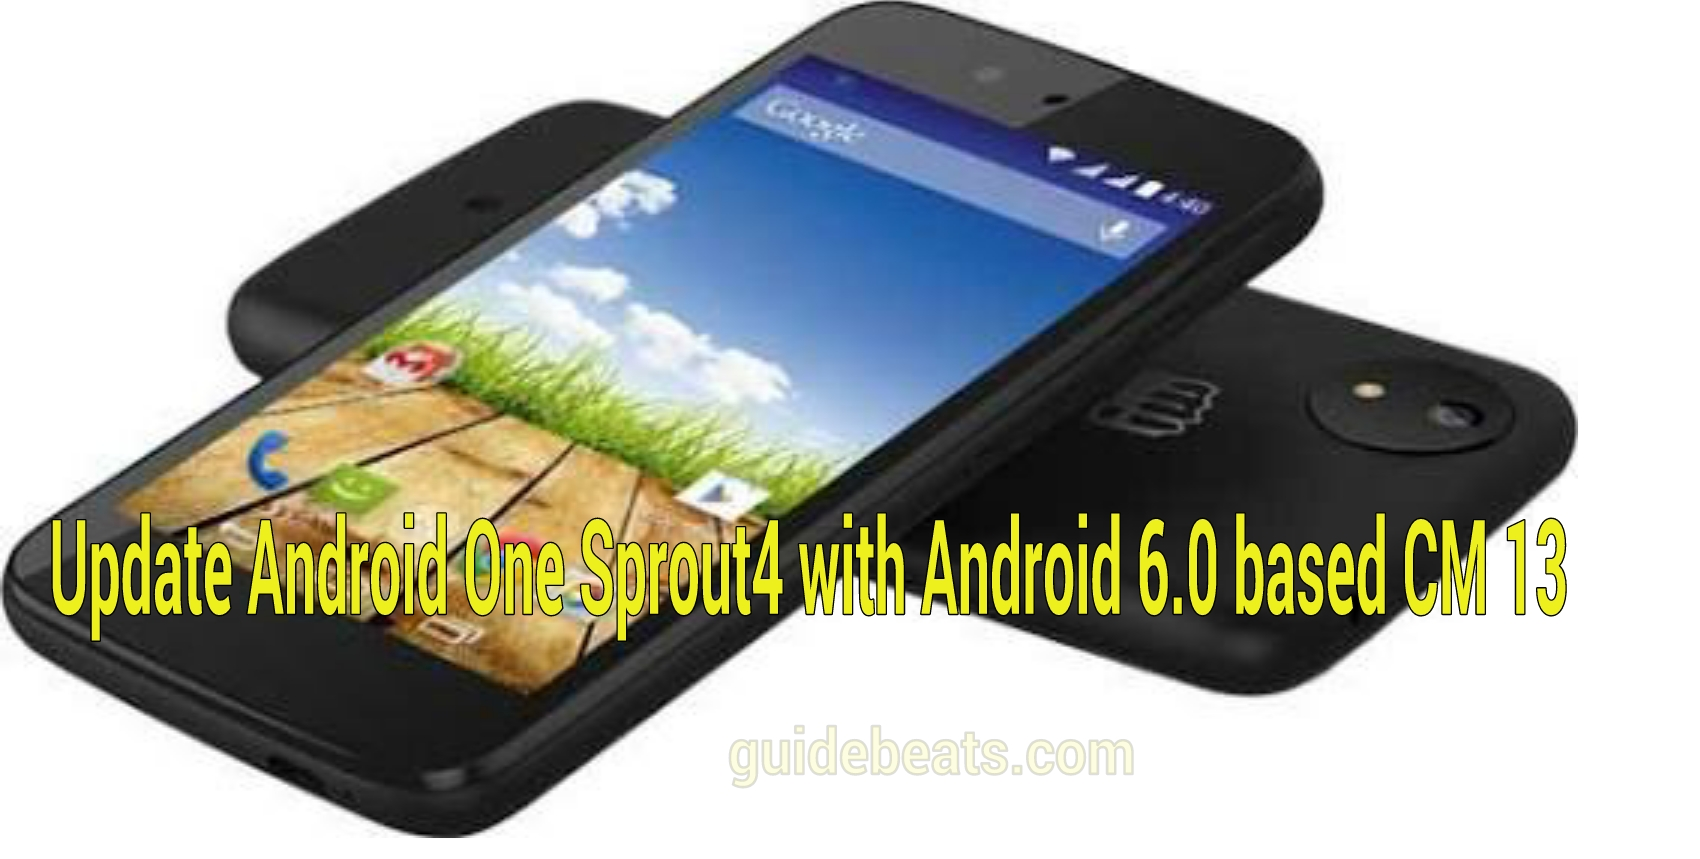 update Android One Sprout4 with Android 6.0